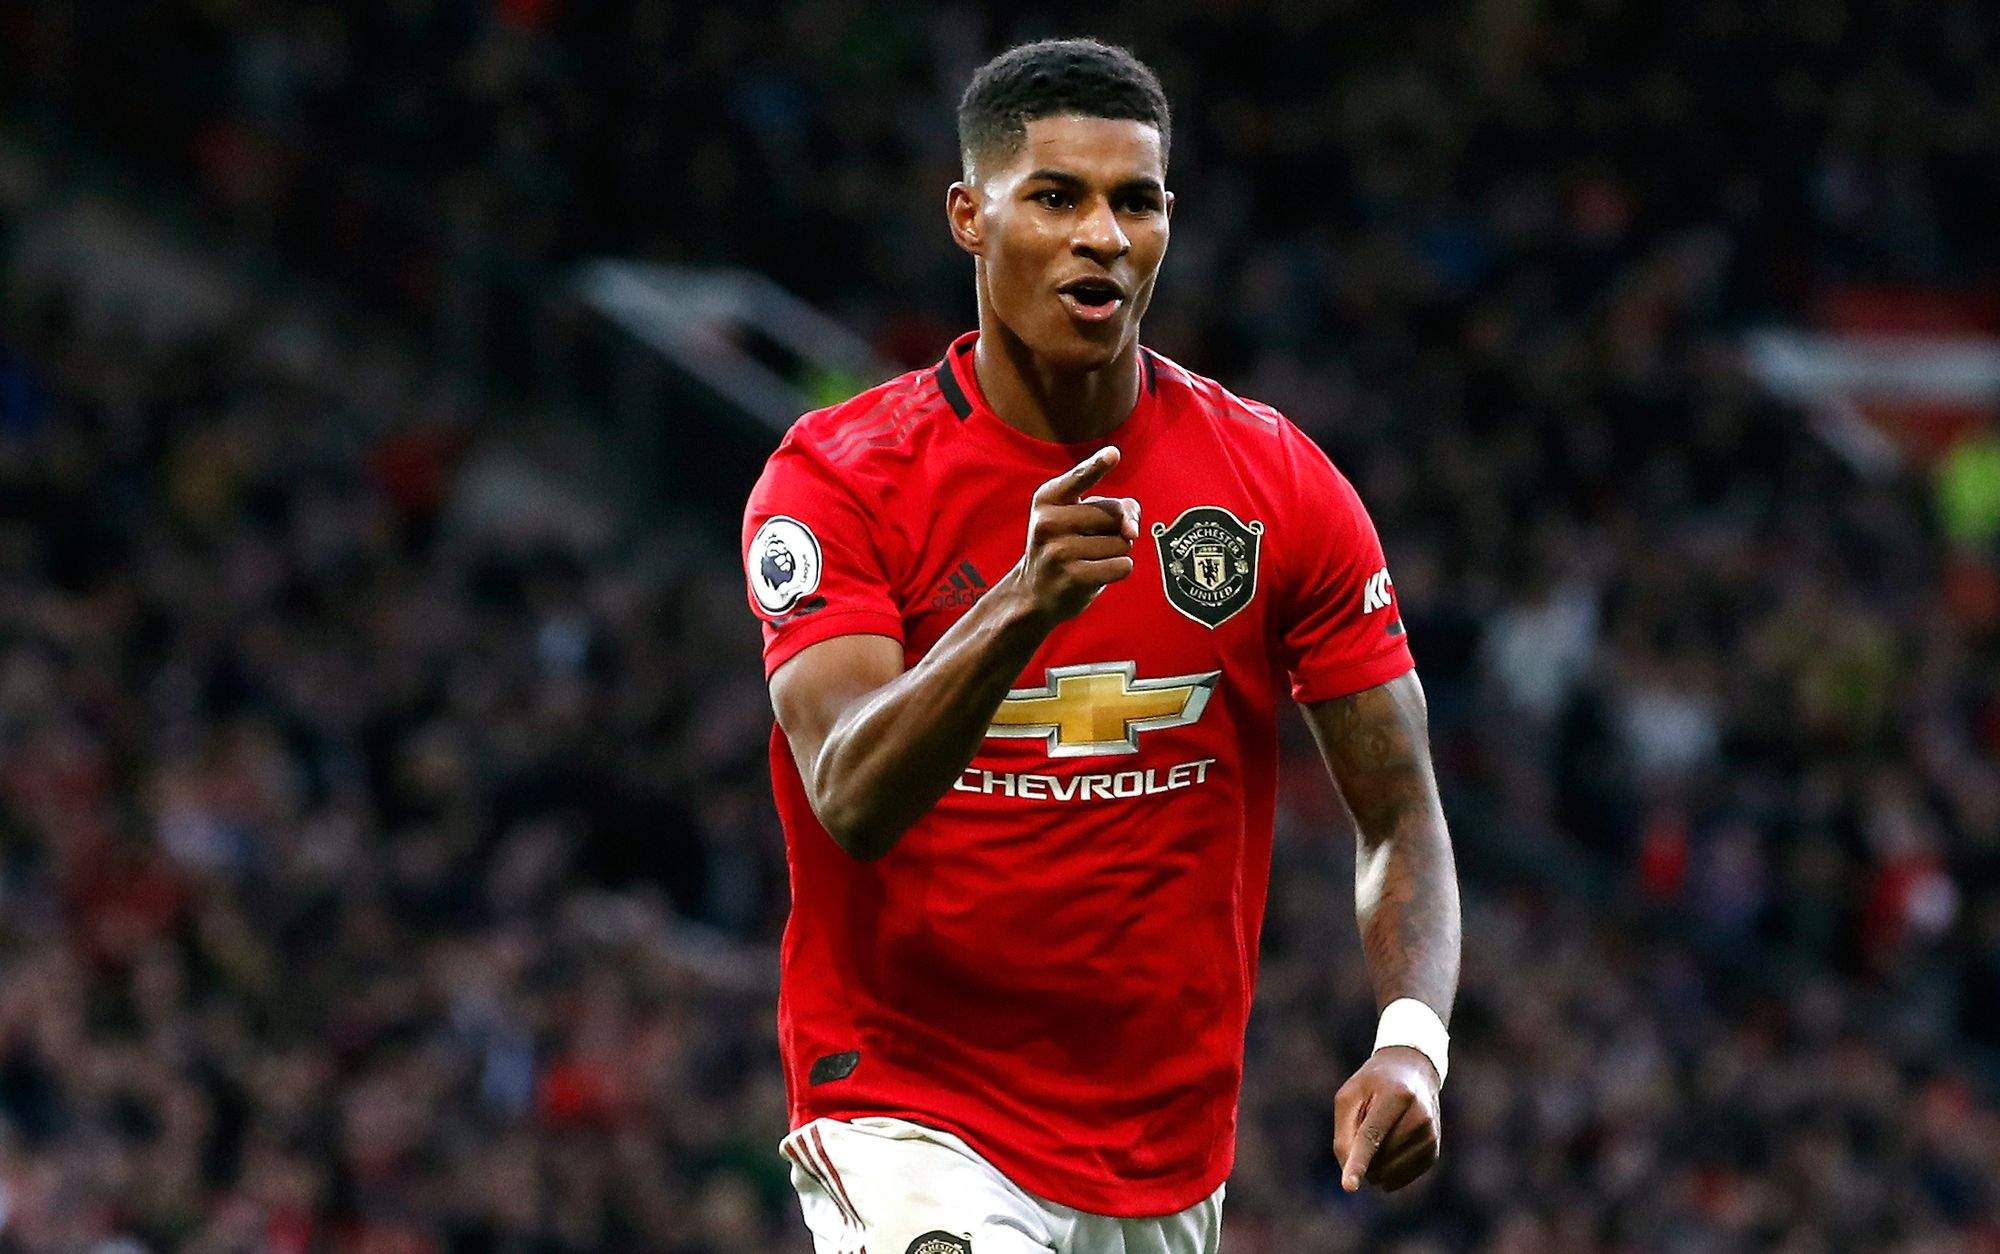 Marcus Rashford and Free School Meals: A Moral and Political Problem